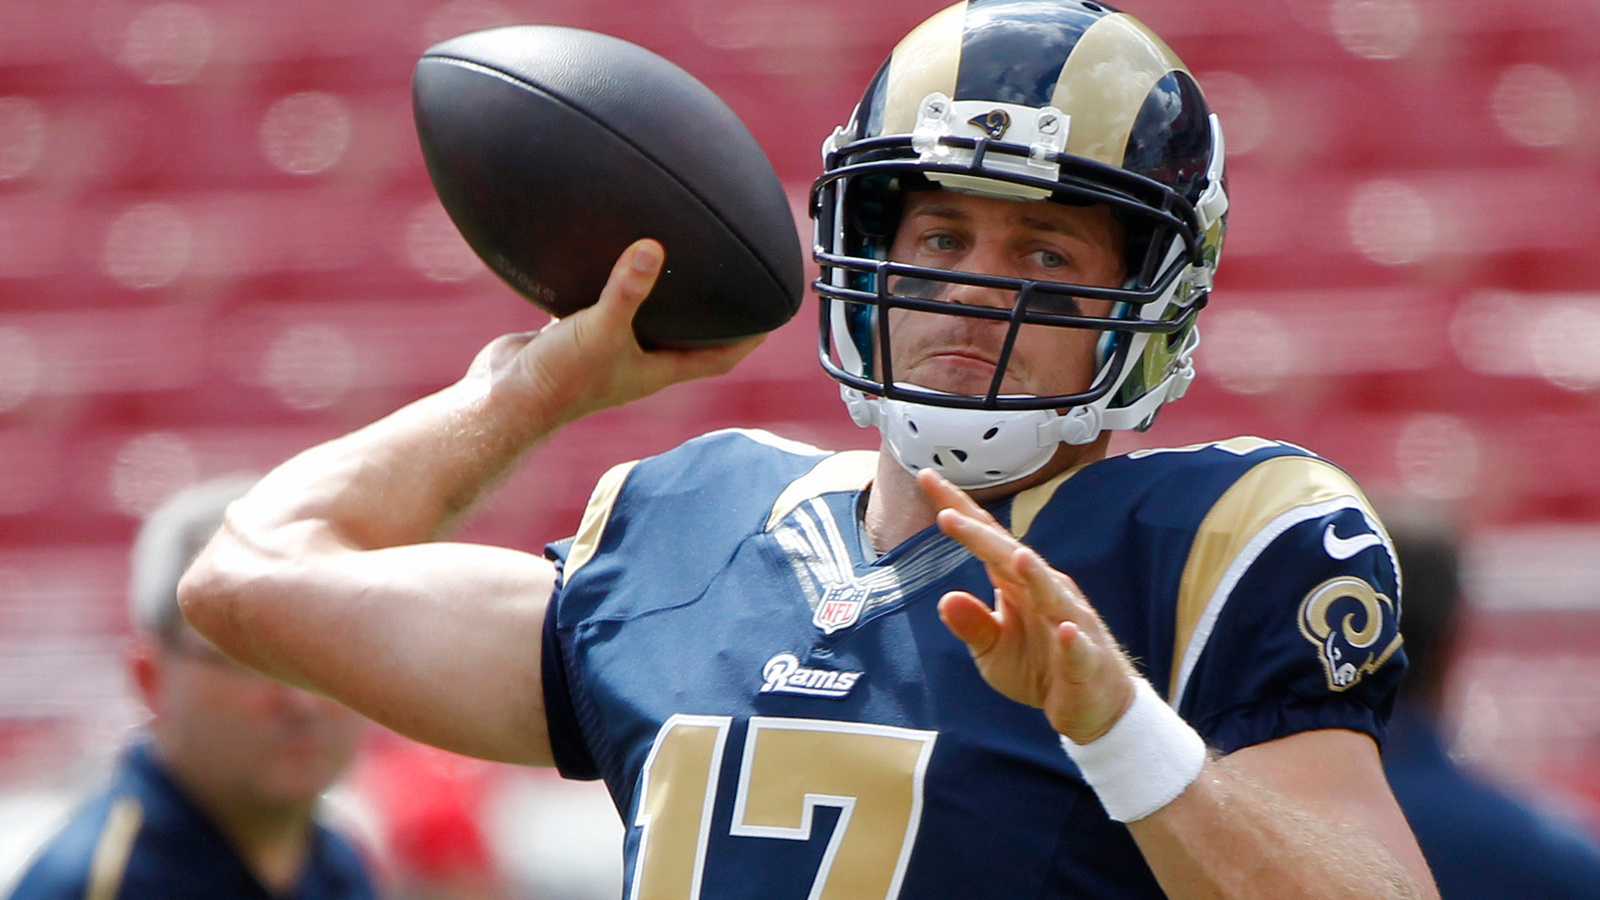 Keenum will start for Rams against a familiar foe -- the Ravens